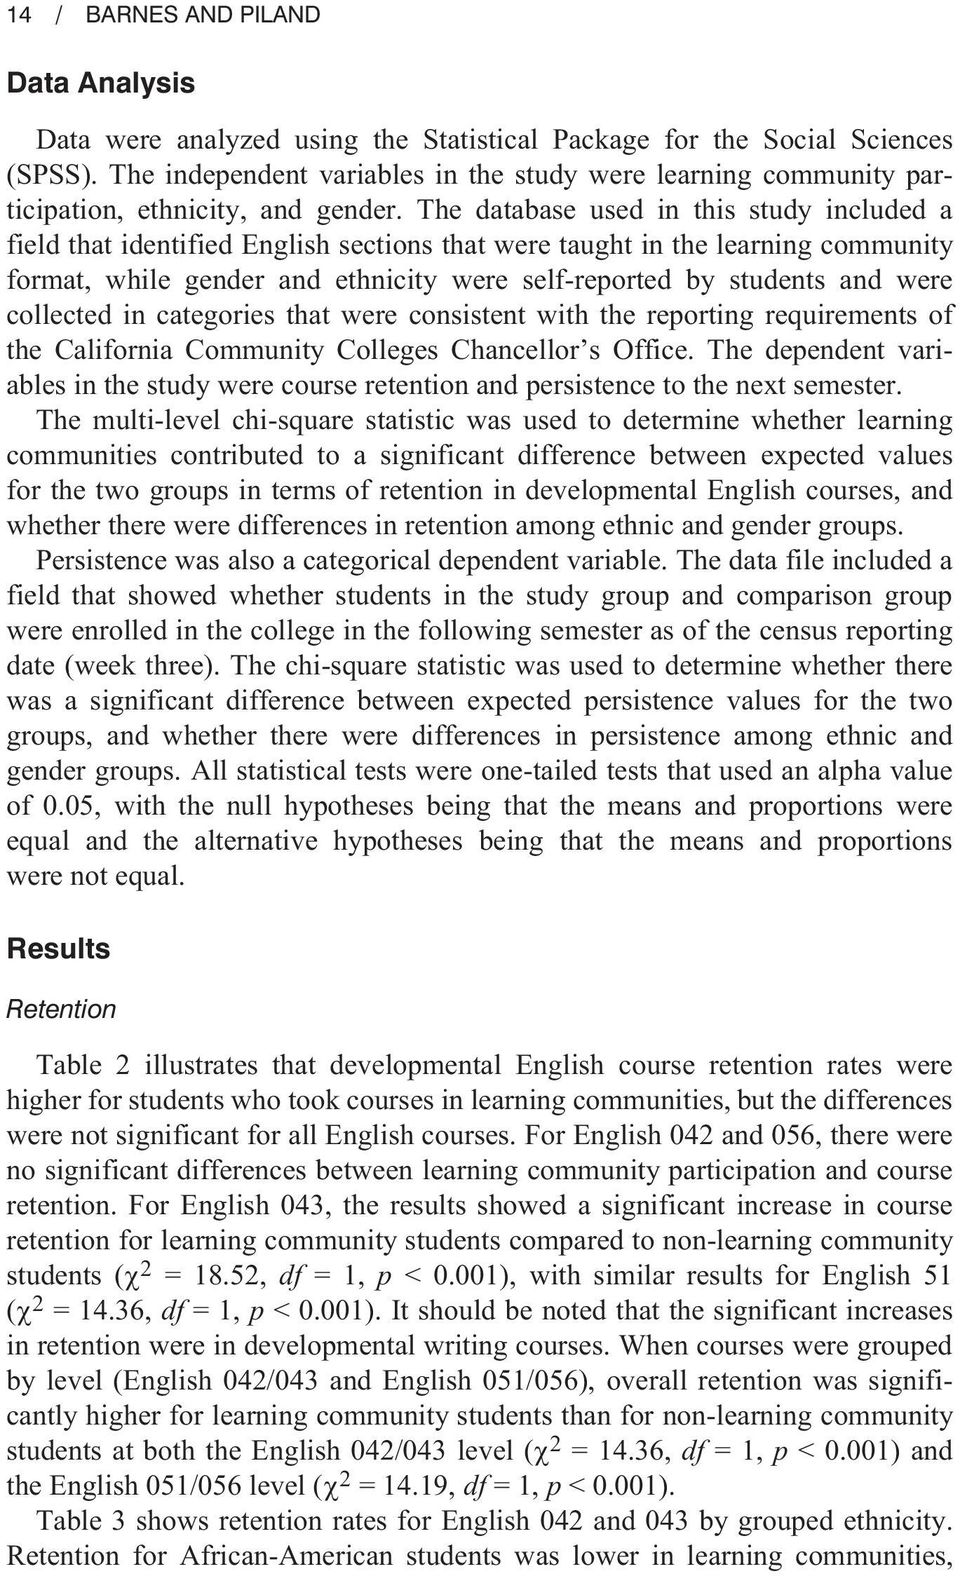 The database used in this study included a field that identified English sections that were taught in the learning community format, while gender and ethnicity were self-reported by students and were